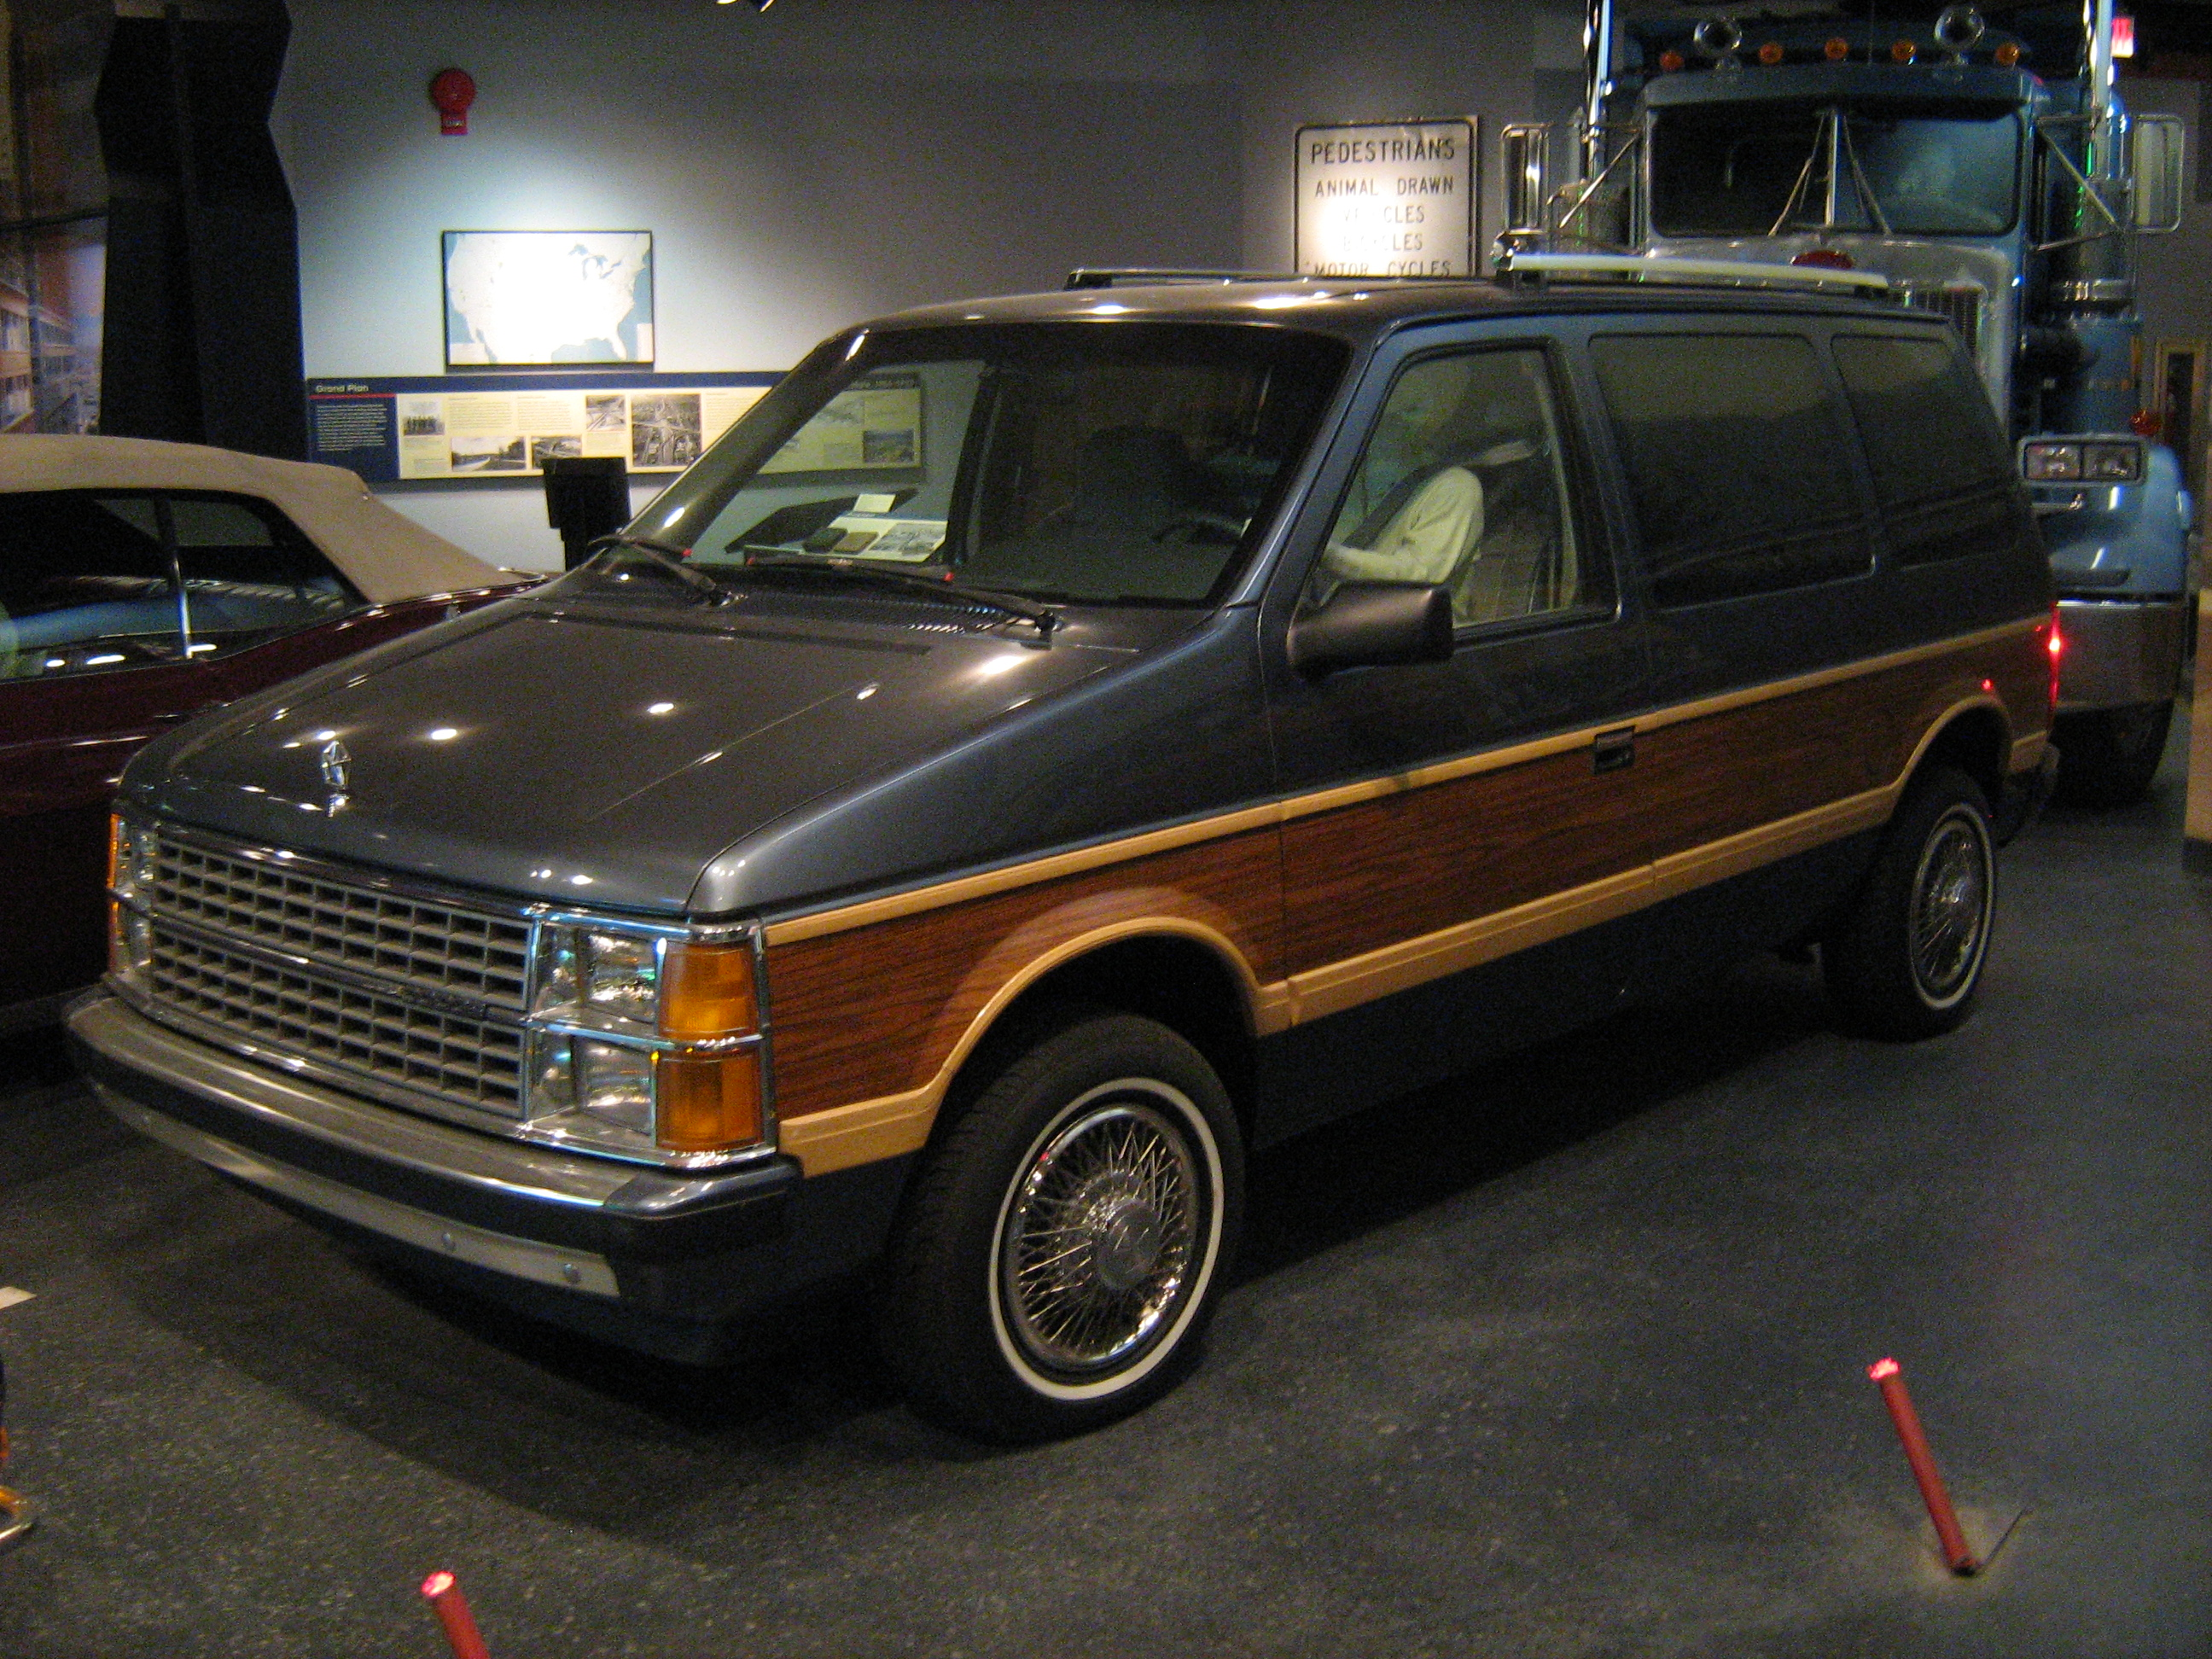 2012 plymouth voyager with File 1986 Dodge Caravan Smithsonian National Museum Of American History on 3128815332 Peugeot 309 Talbot Arizona 5 Portes Maquette By Me as well 2008 Dodge Avenger 2 4 Belt Routing Diagram further Showthread as well Toyota Releases 2012 Sienna Features And Pricing together with Vehicle 579482 Chrysler Town And Country 1996.